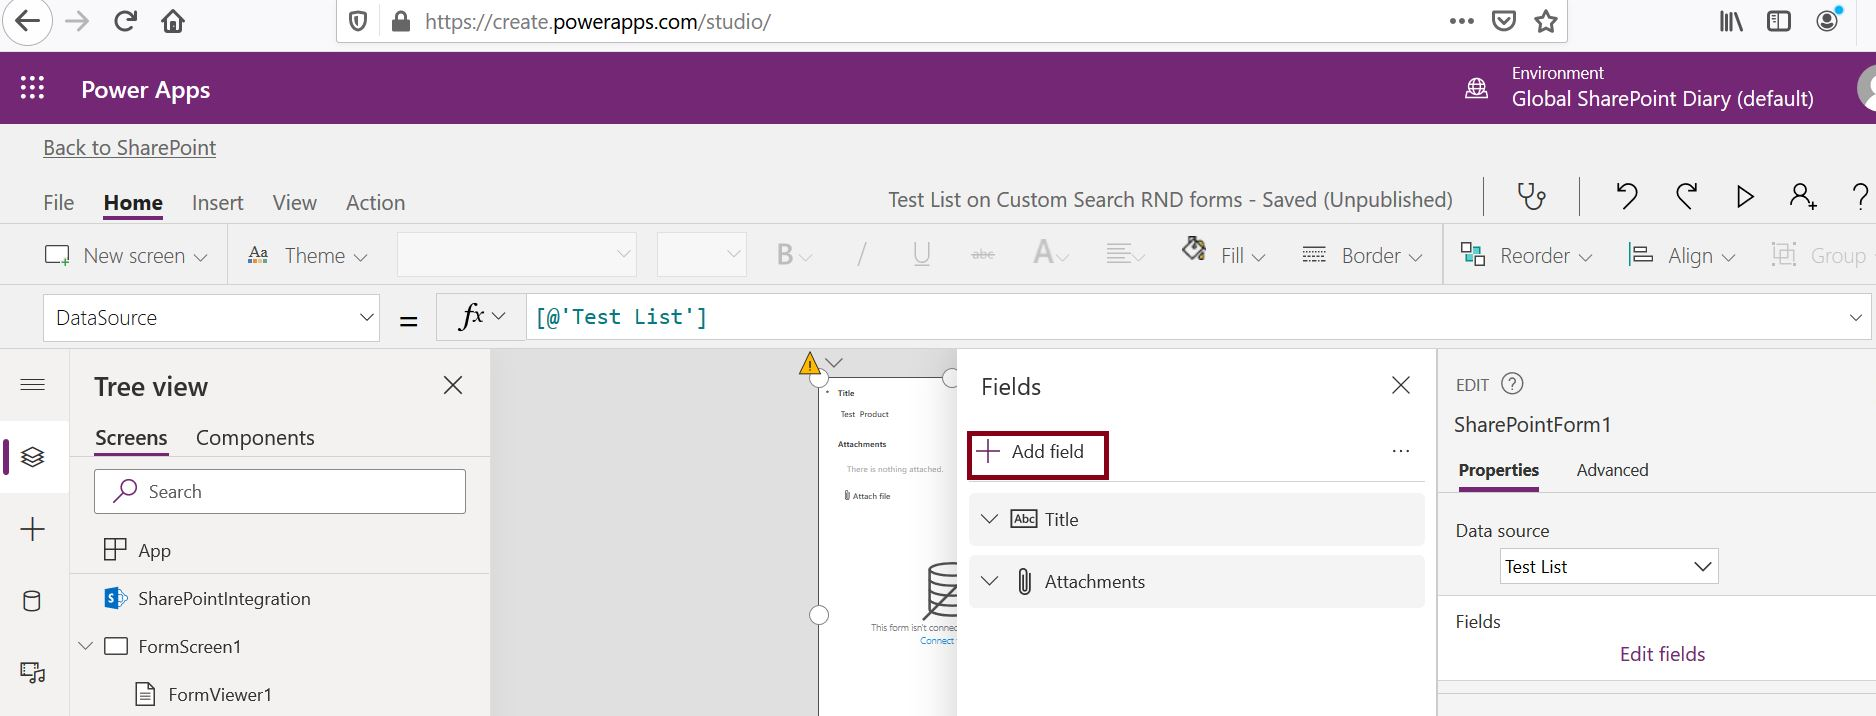 Customize SharePoint list form using PowerApps home page